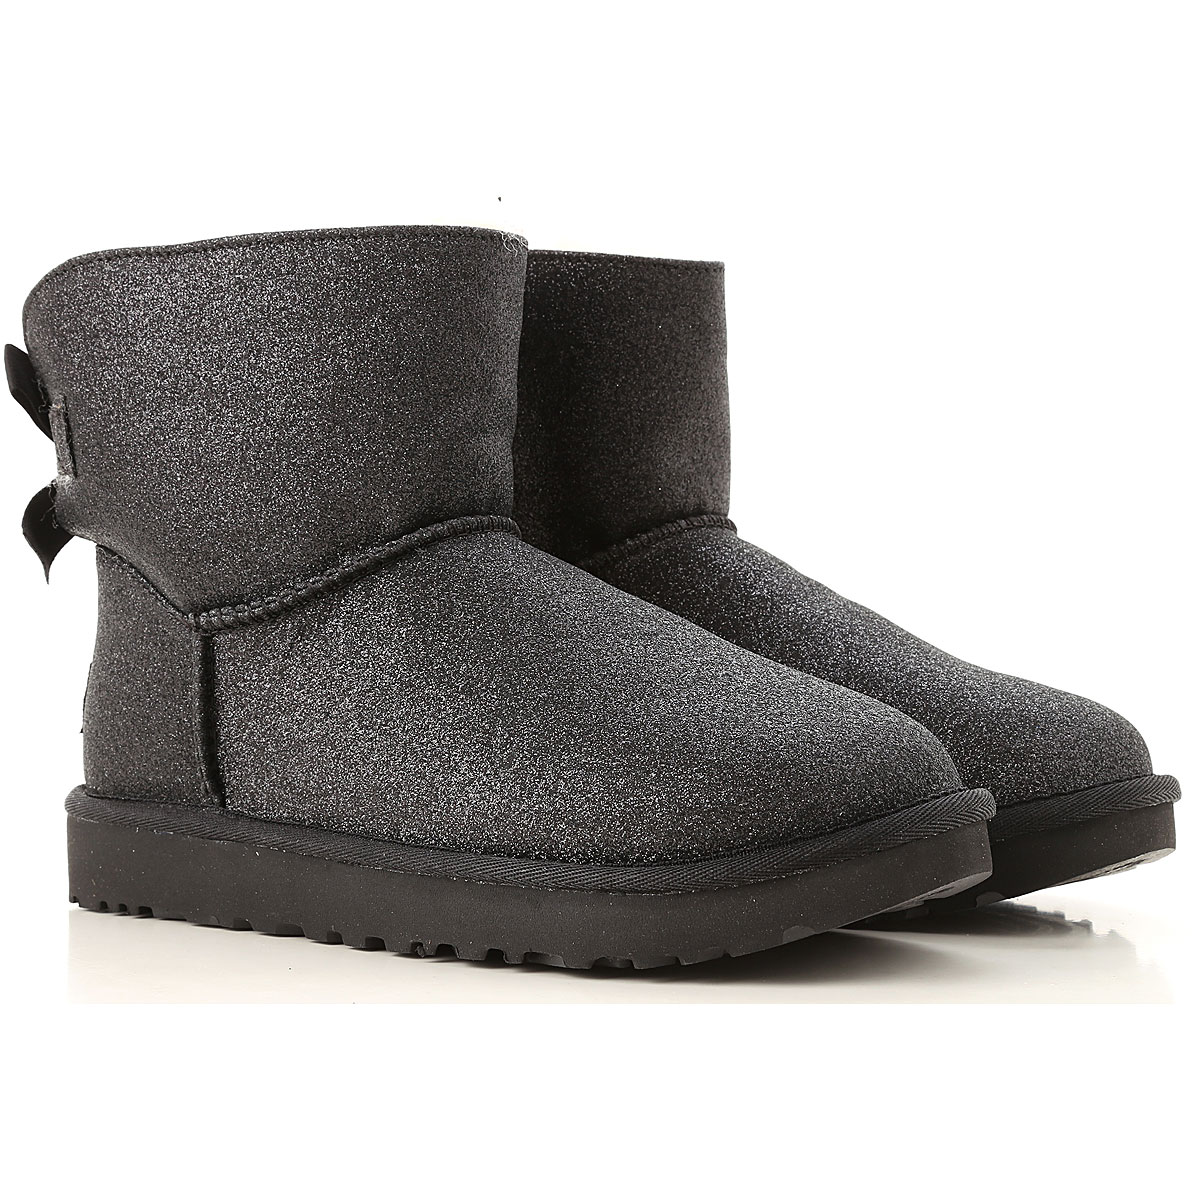 Image of UGG Boots for Women, Booties, Black, Sparkle, 2017, USA 5 UK 3 5 EU 36 JAPAN 220 USA 6 UK 4 5 EU 37 JAPAN 230 USA 7 UK 5 5 EU 38 JAPAN 240 USA 8 UK 6 5 EU 39 JAPAN 250 USA 9 UK 7 5 EU 40 JAPAN 260 USA 10 UK 8 5 EU 41 JAPAN 270